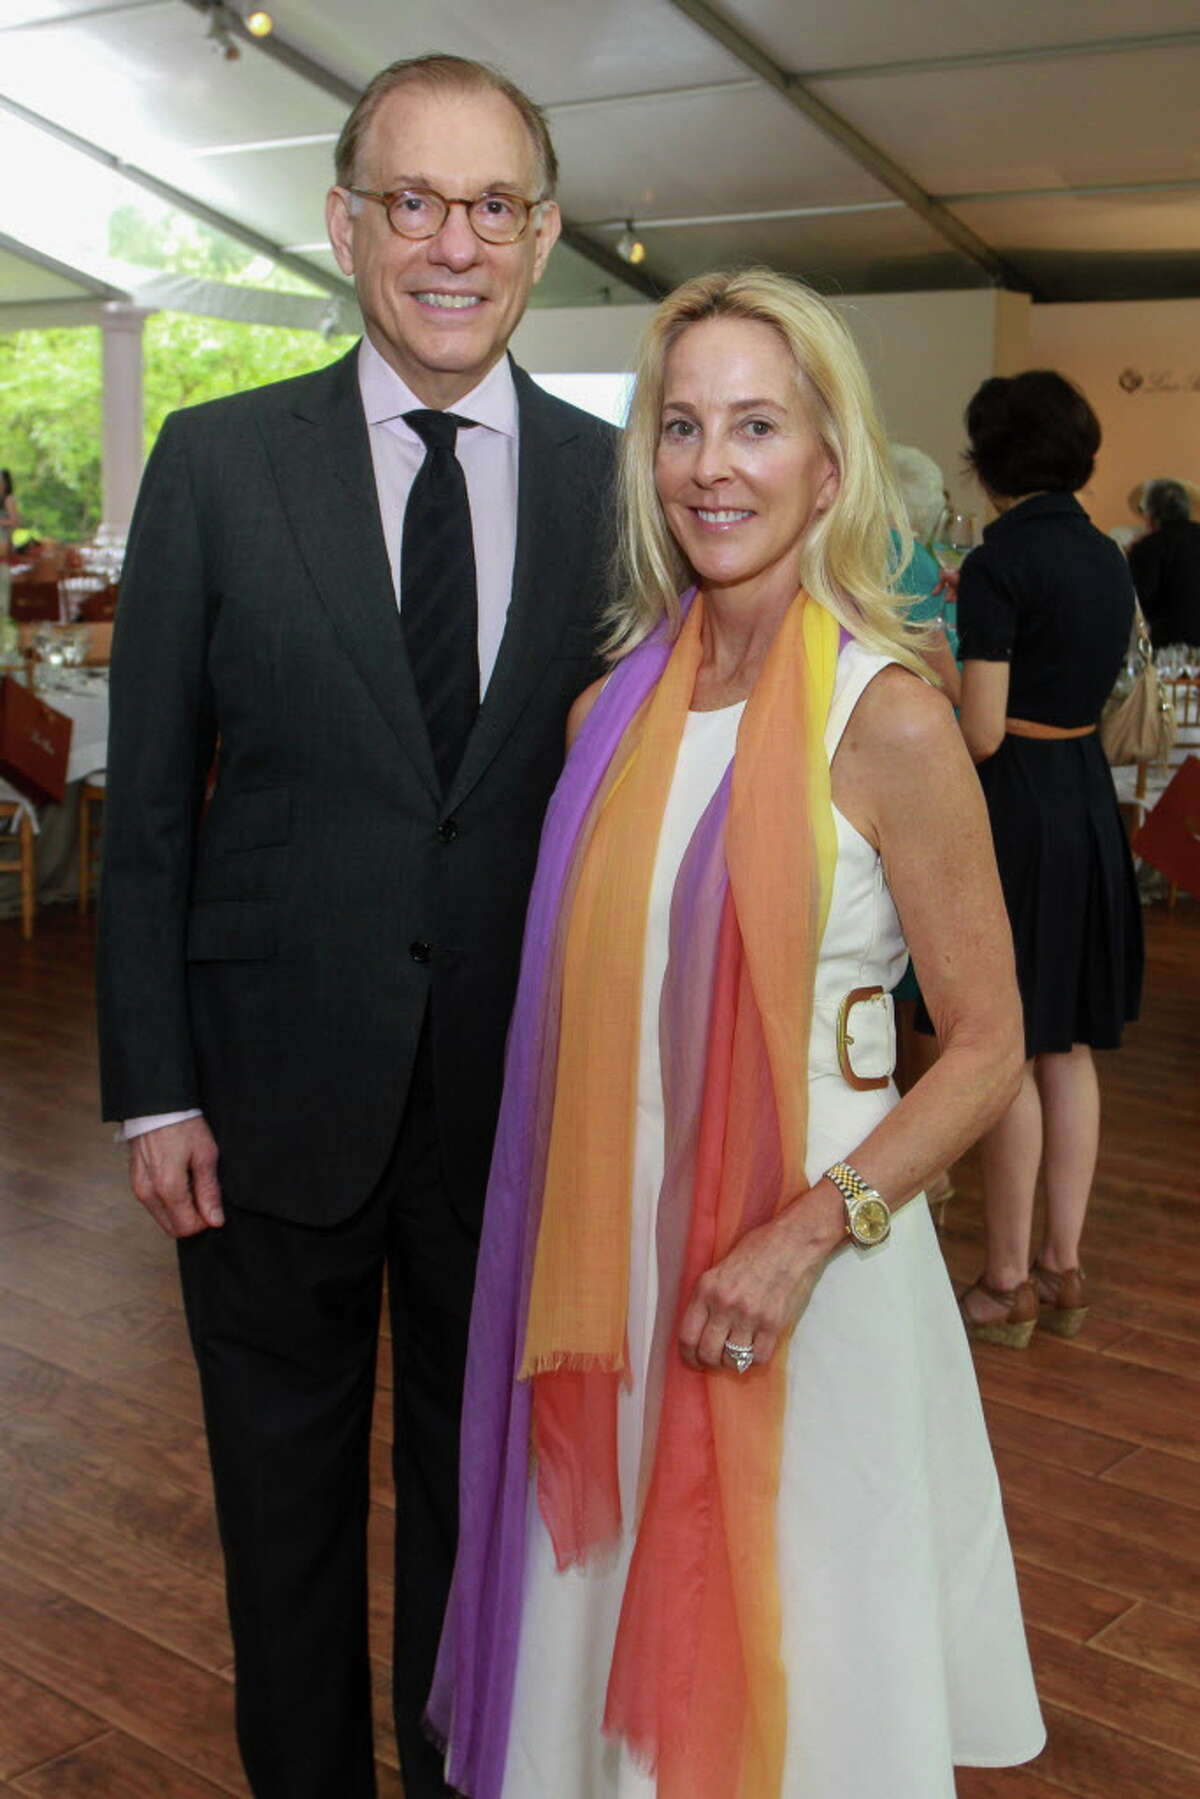 Gary Tinterow and Eliza Stedman at the Bayou Bend Luncheon and Fashion Show.